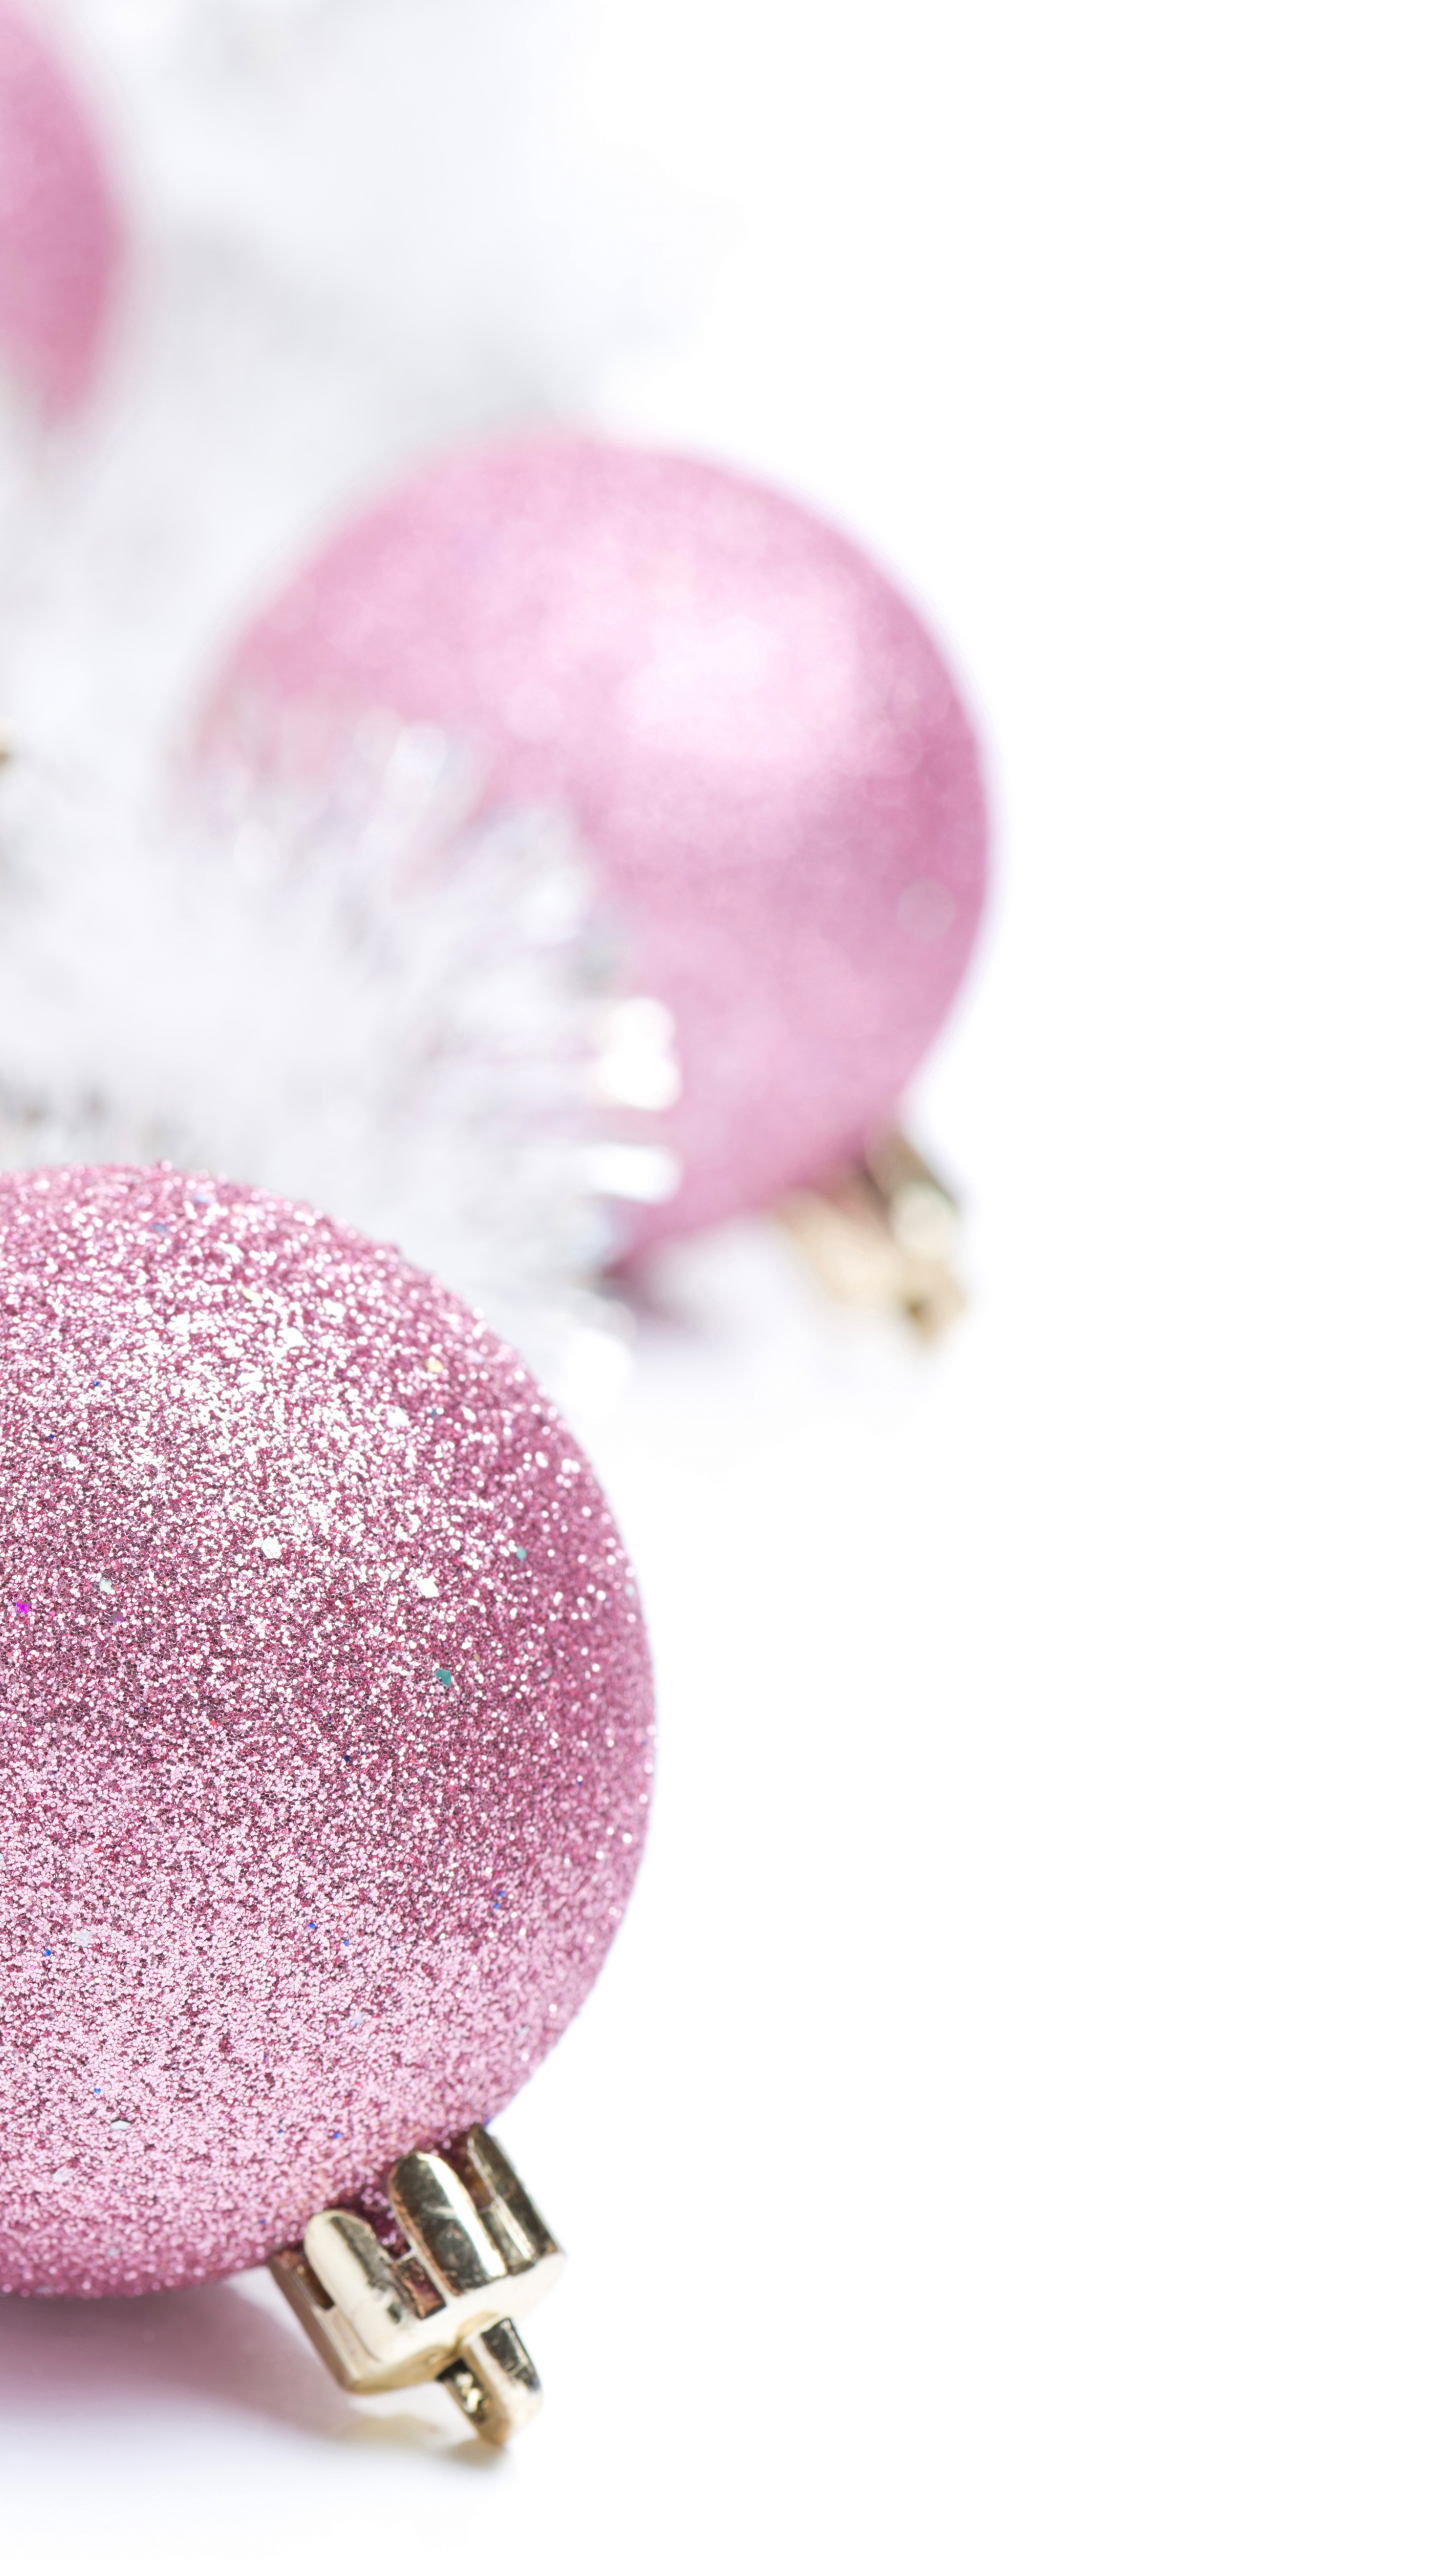 free download christmas background with pink christmas balls gallery 5000x5000 for your desktop mobile tablet explore 65 pink christmas wallpaper pink background wallpaper pink wallpaper blog light pink wallpaper pink christmas balls gallery 5000x5000